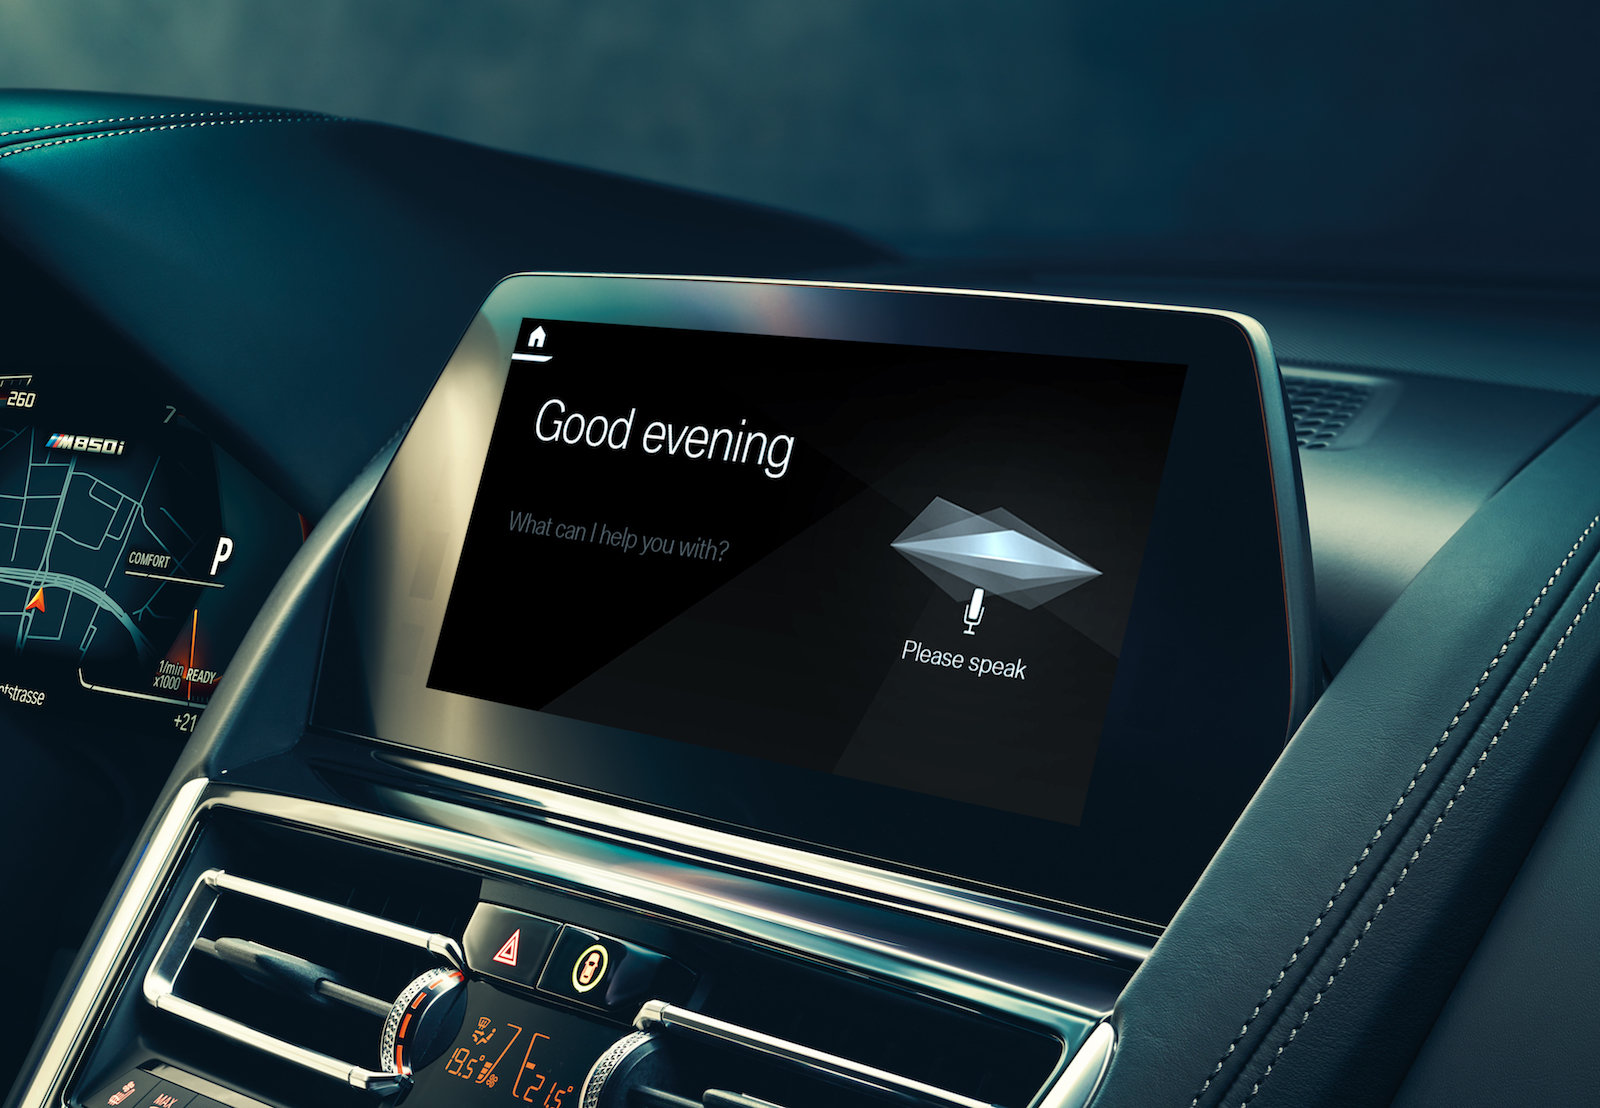 CapGemini Report Says 95 Percent of Motorists to Use in-Car Assistants by 2023